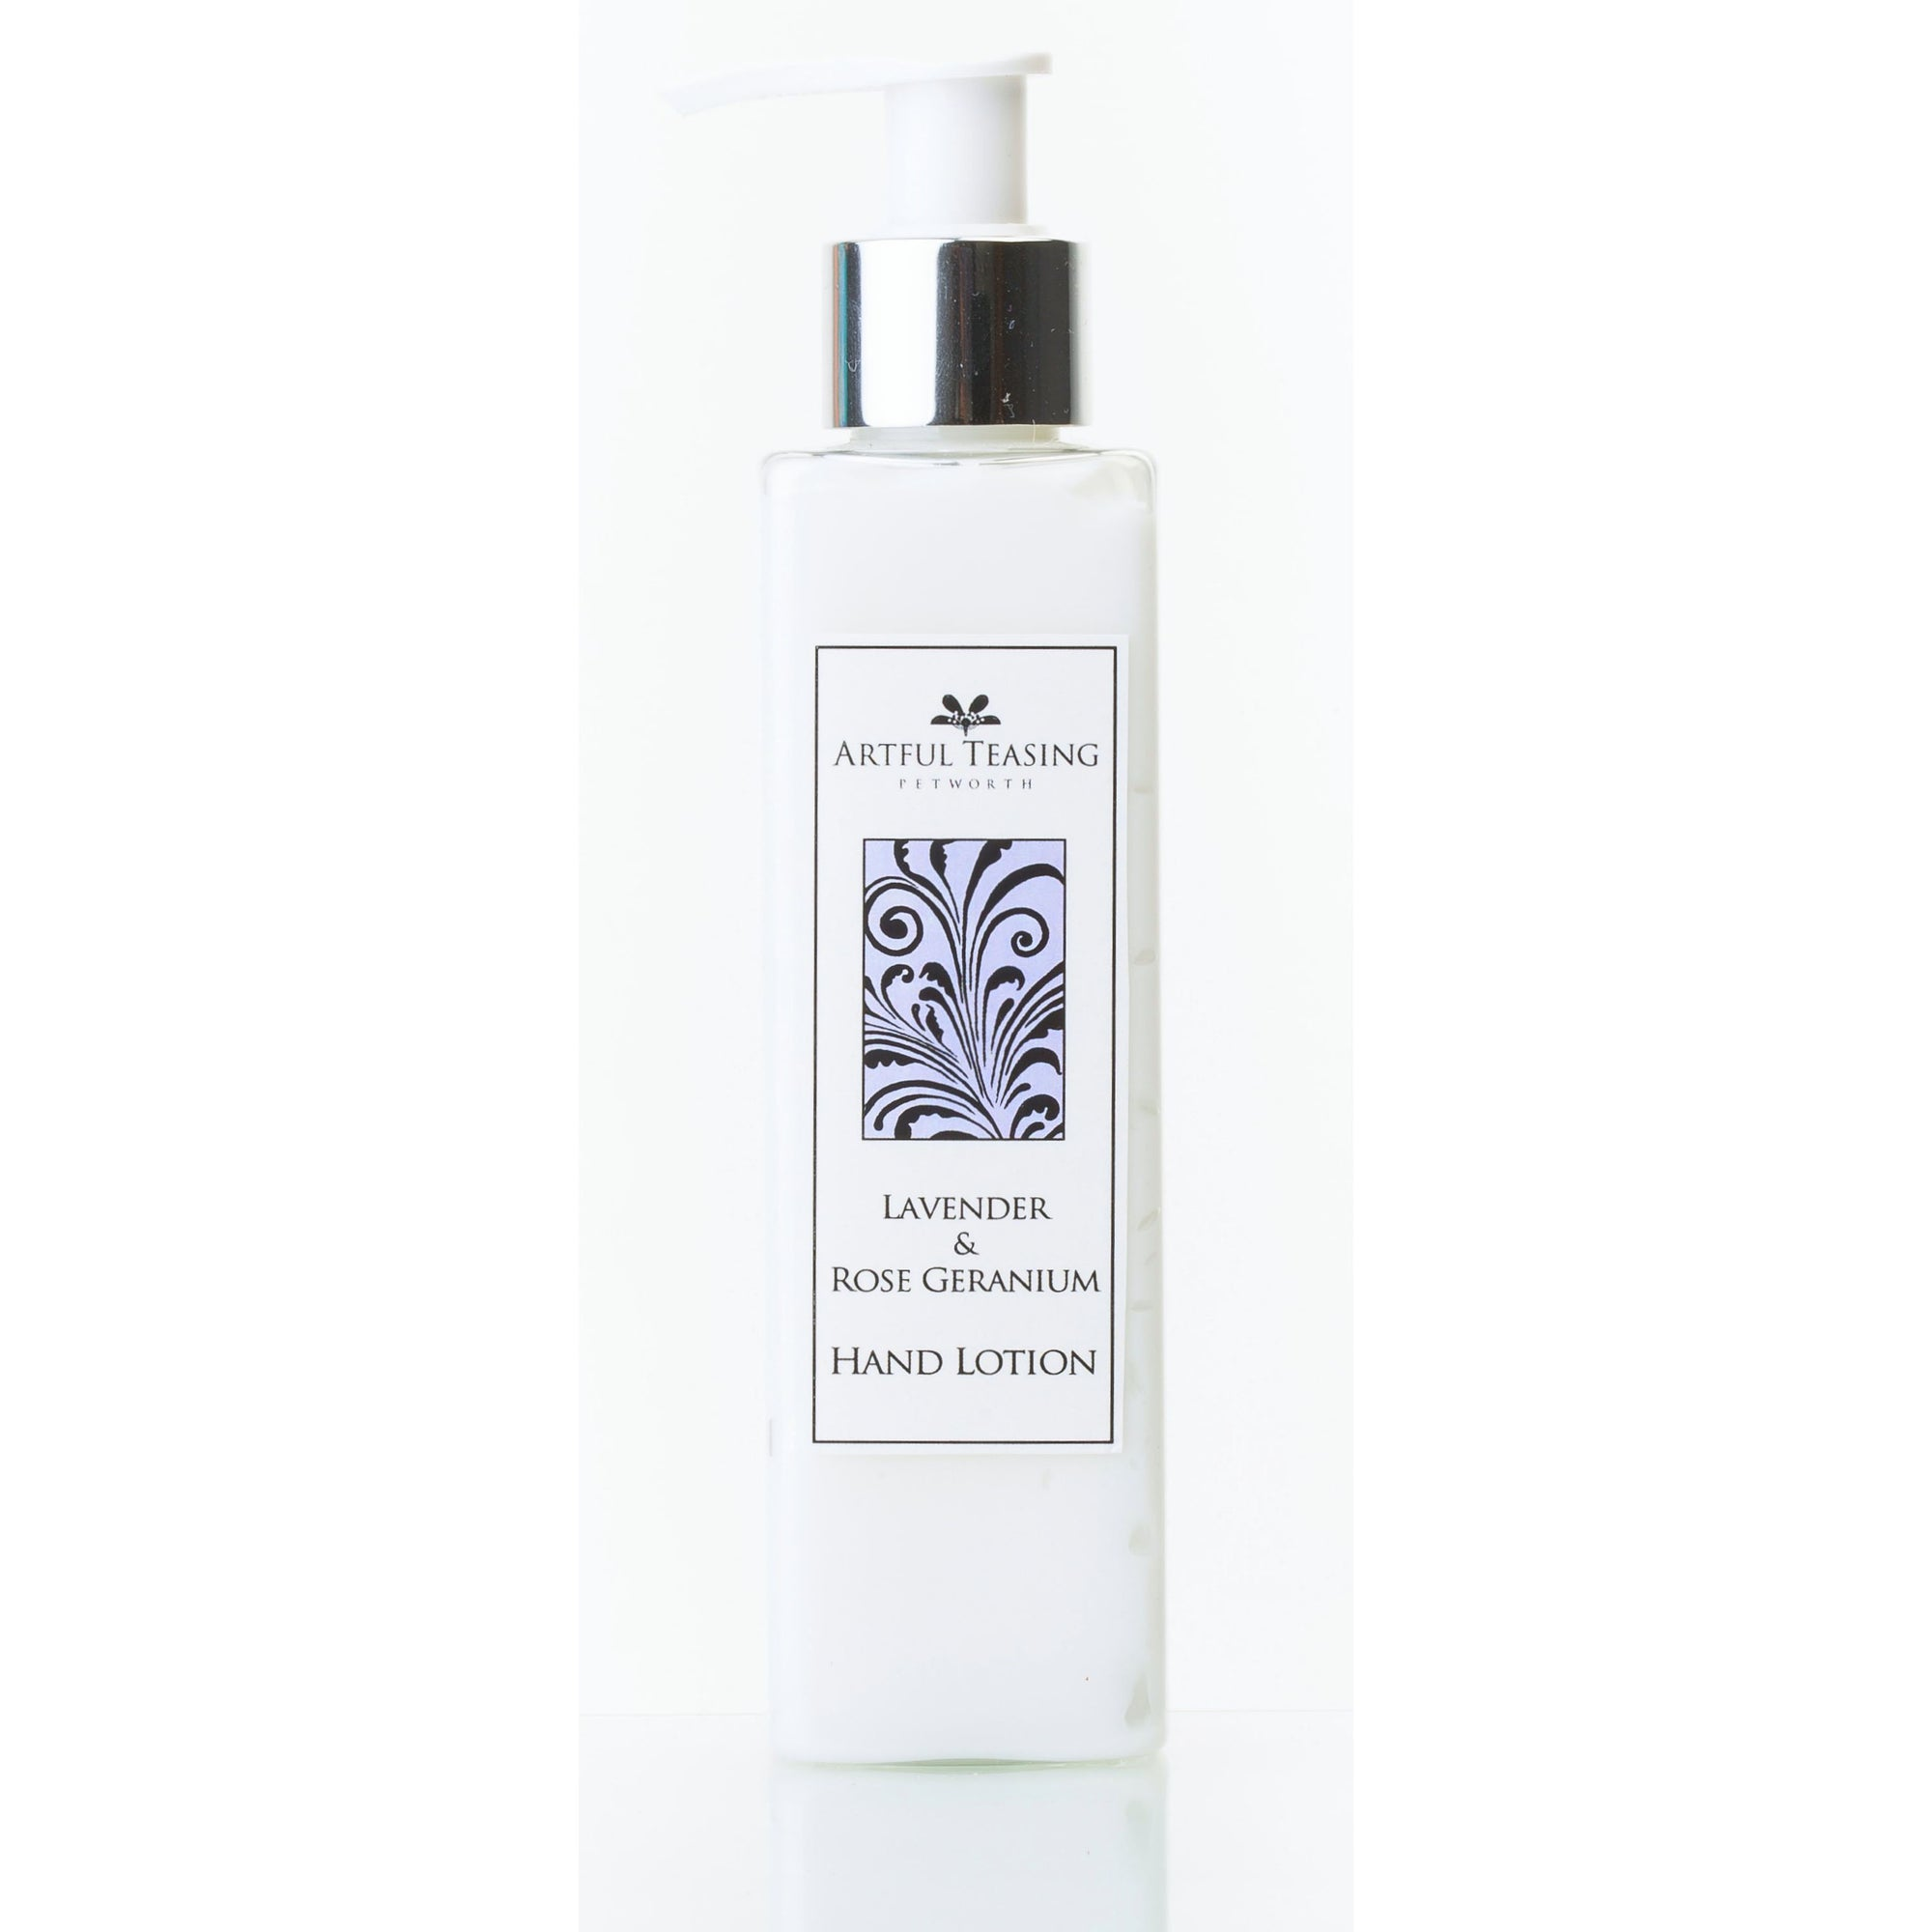 Lavender & Rose Geranium Hand Lotion 200ml